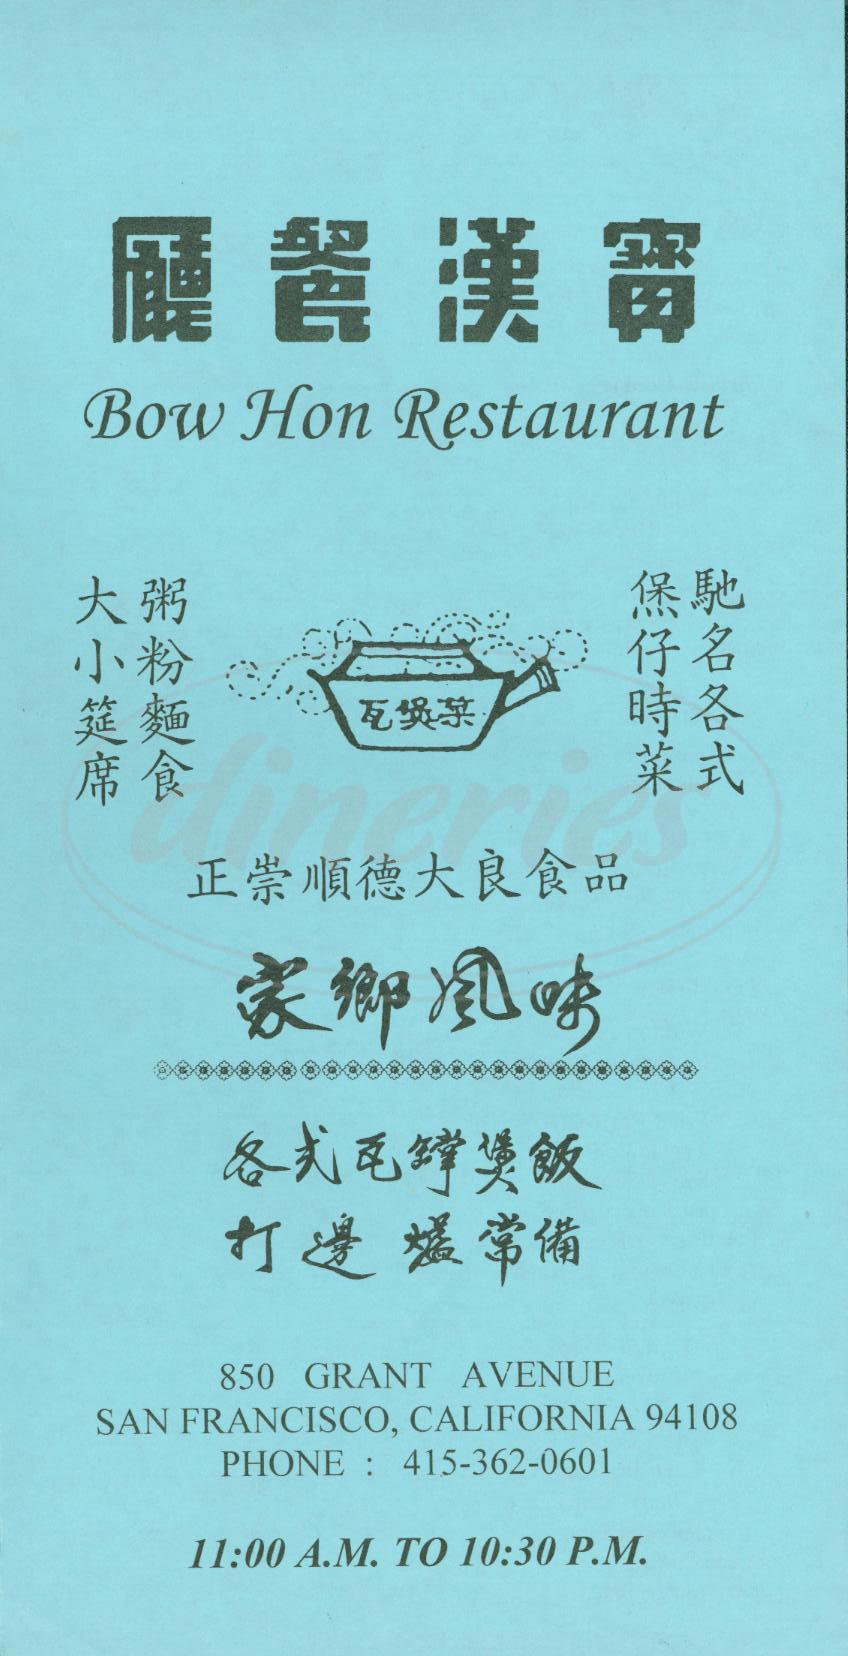 menu for Bow Hon Restaurant